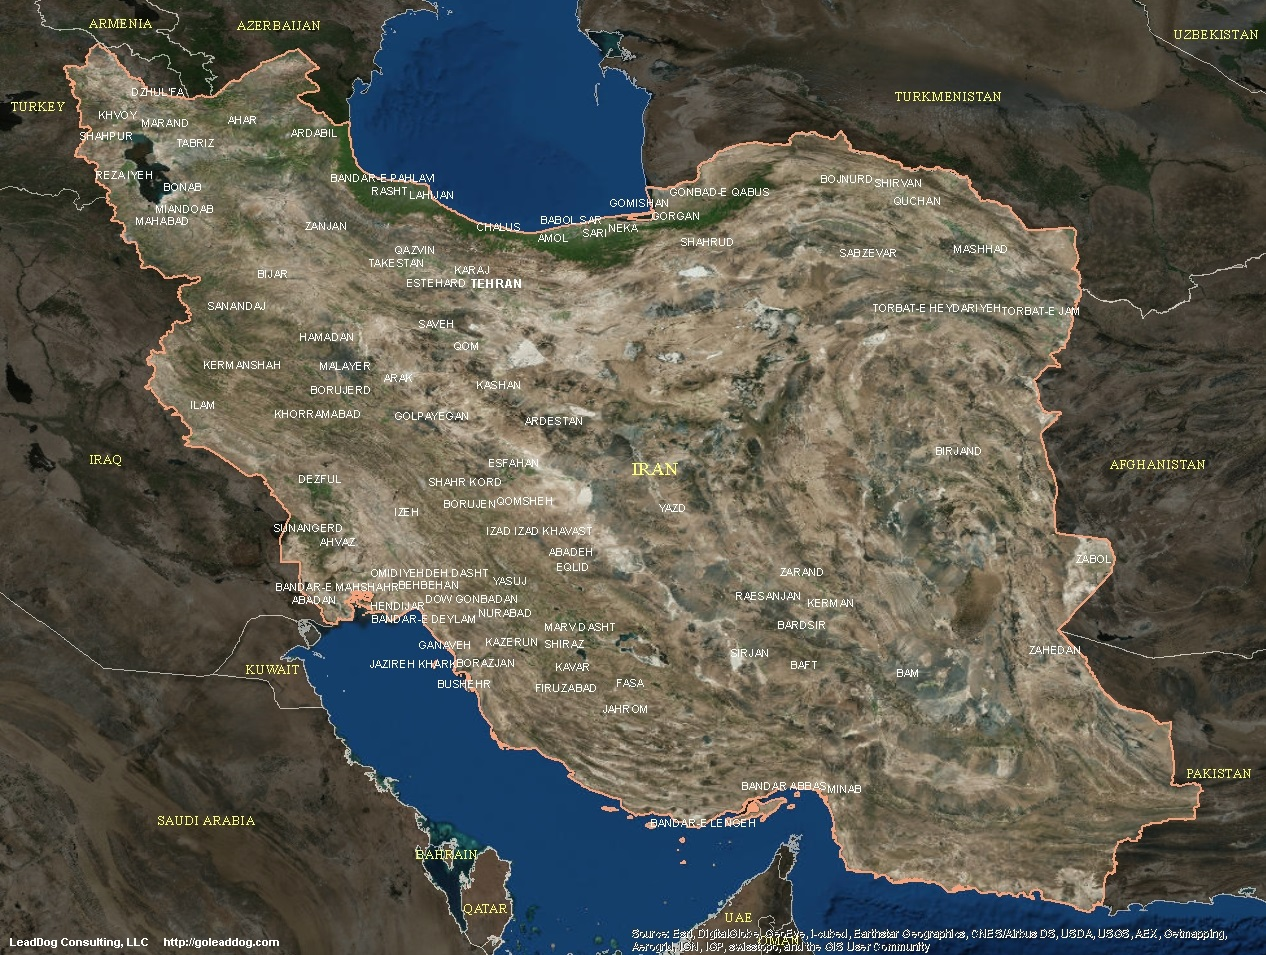 Iran Satellite Maps | LeadDog Consulting on satellite map of caribbean islands, satellite map of tunisia, satellite map of trinidad and tobago, satellite map of vatican city, satellite map of germany, satellite map of the bahamas, satellite map of haiti, satellite map of czech republic, satellite map of iceland, satellite map of somalia, satellite map of united states of america, satellite map of canada, satellite map of the gambia, satellite map of saipan, satellite map of kosovo, satellite map of the vatican, satellite map of solomon islands, satellite map of ireland, satellite map of brunei darussalam, satellite map of qatar,